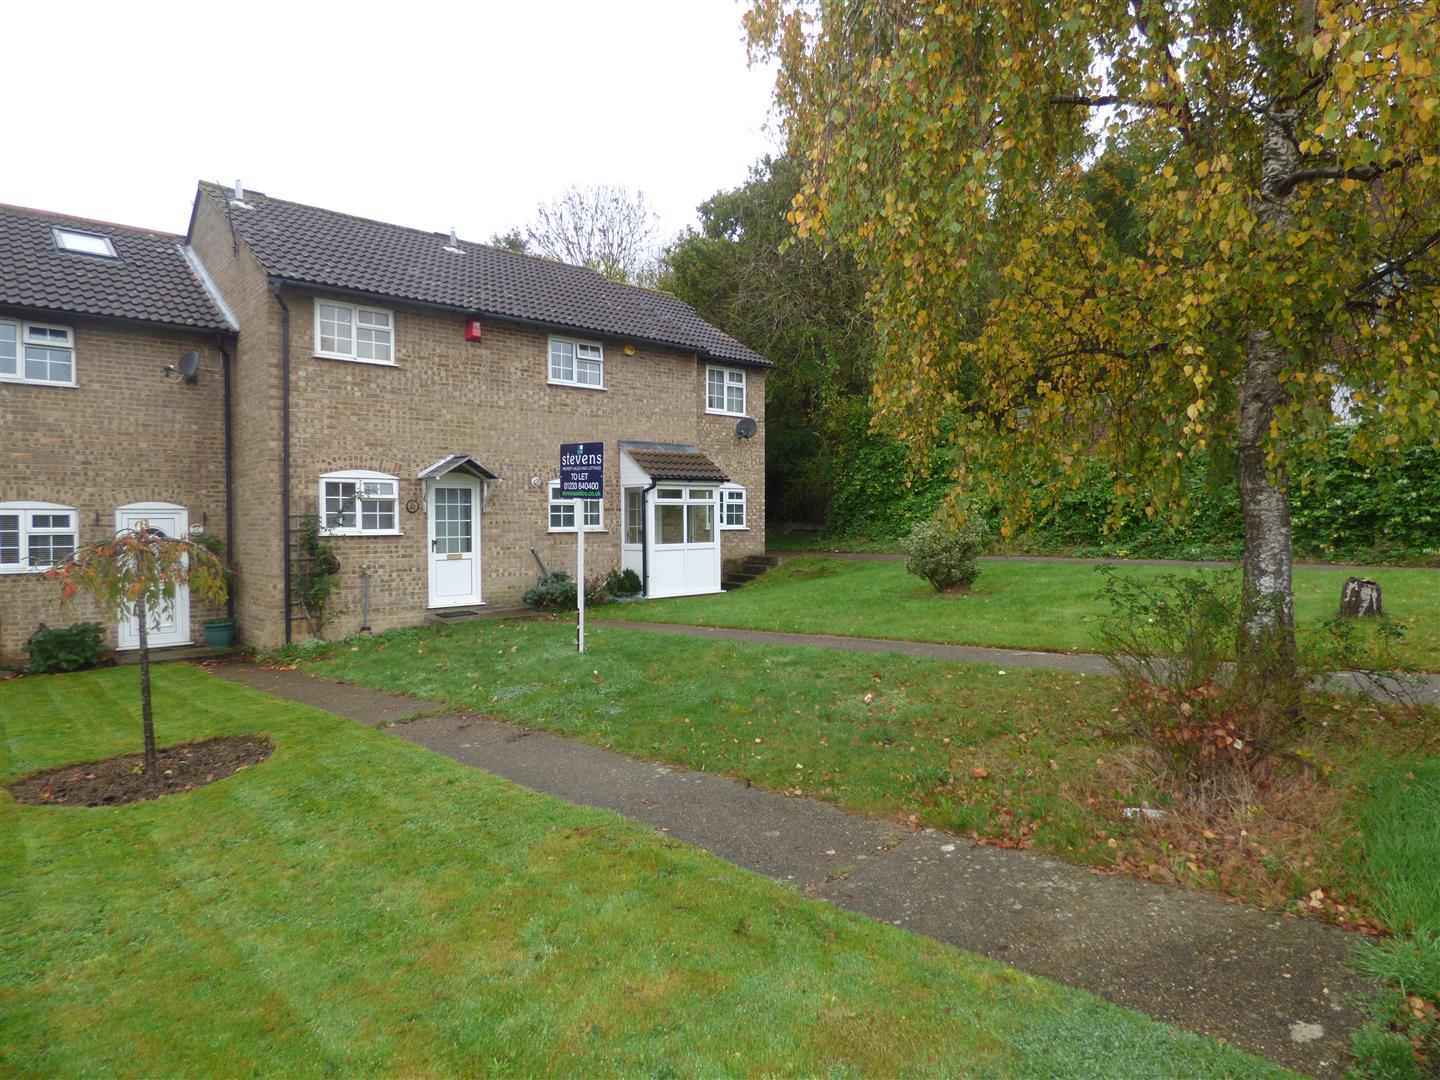 2 Bedrooms Terraced House for sale in Hawks Way, Ashford